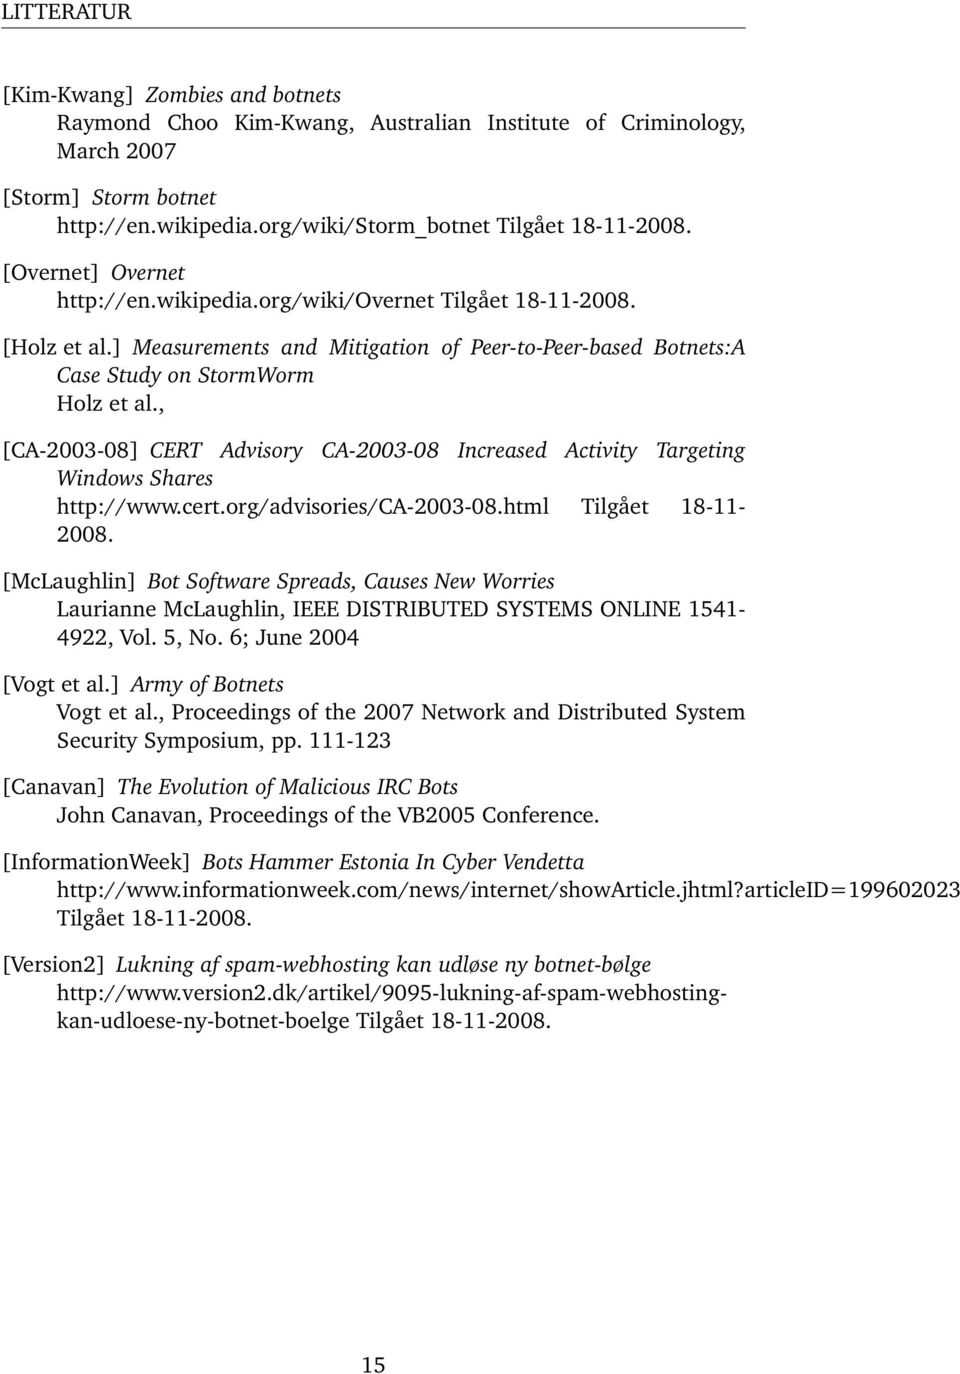 , [CA-2003-08] CERT Advisory CA-2003-08 Increased Activity Targeting Windows Shares http://www.cert.org/advisories/ca-2003-08.html Tilgået 18-11- 2008.